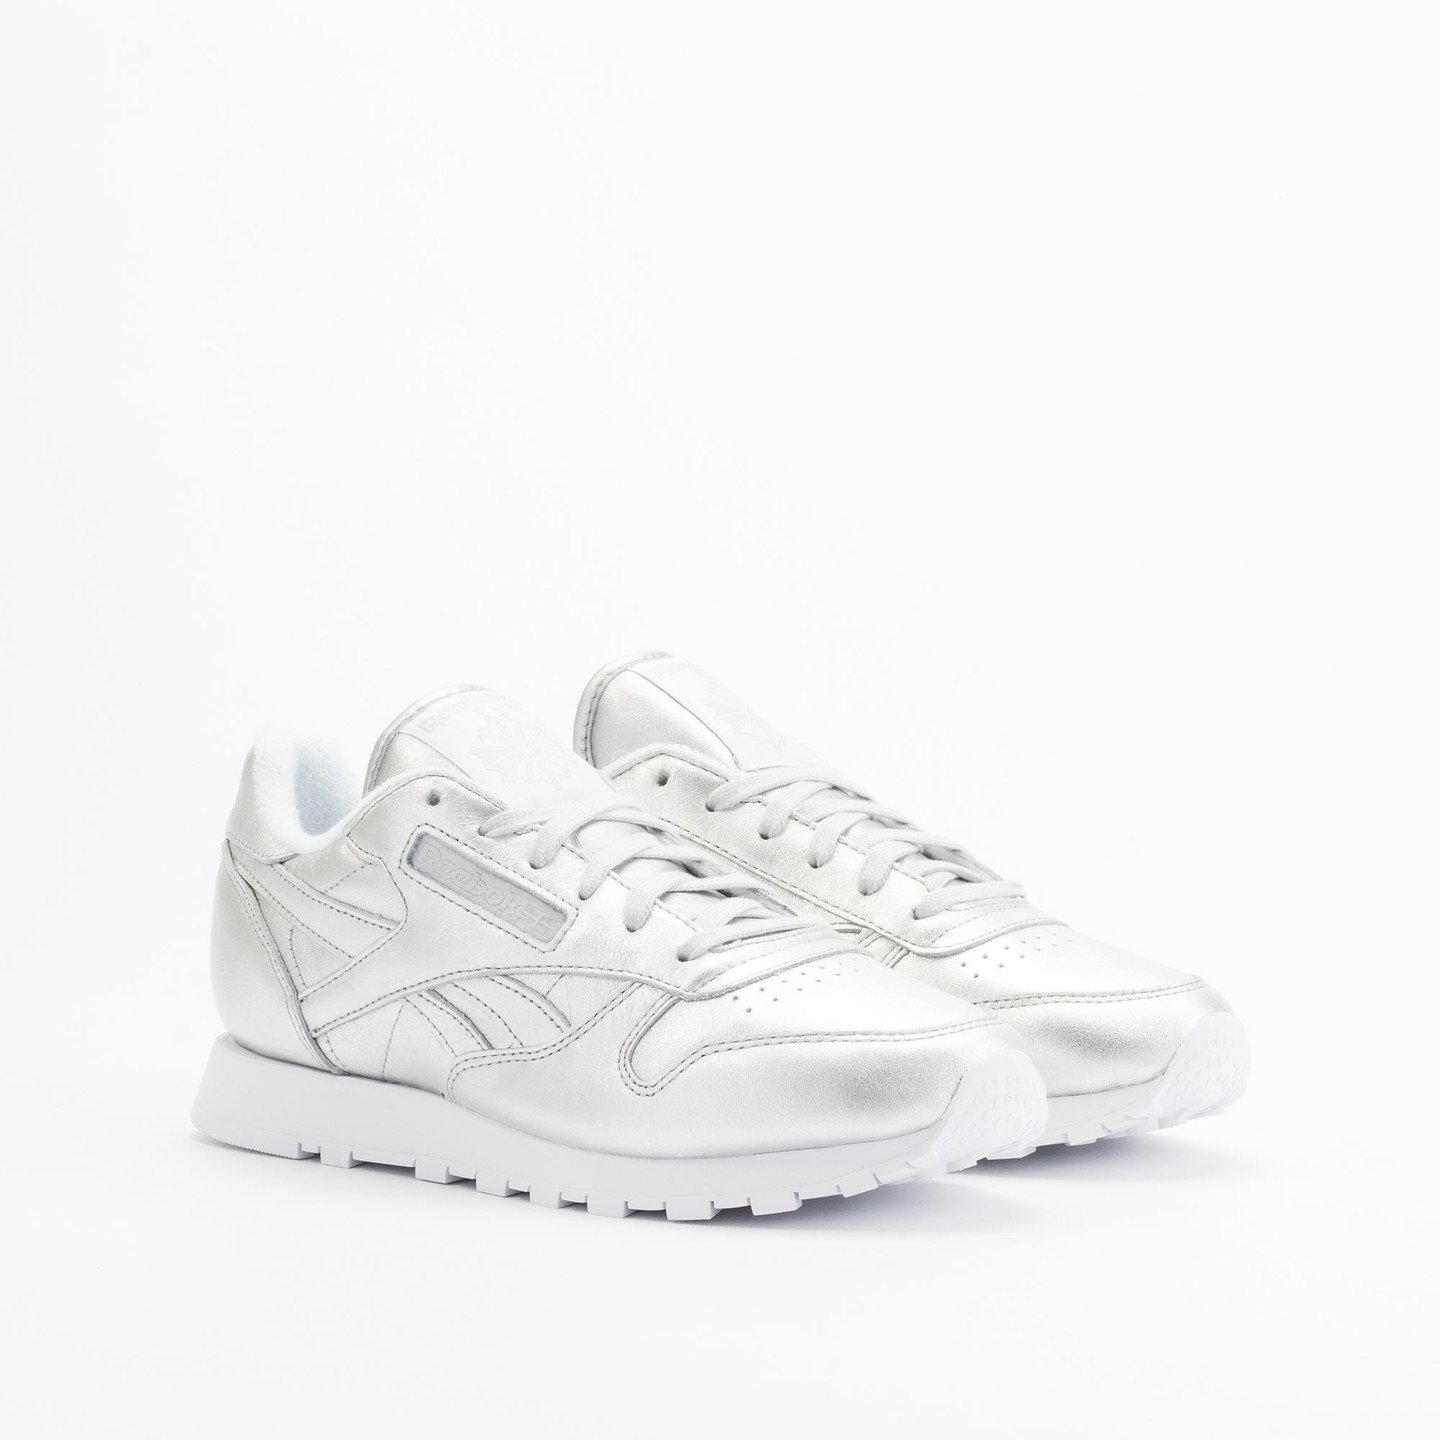 Reebok Classic Leather Spirit Presence Silver / White V62700-40.5